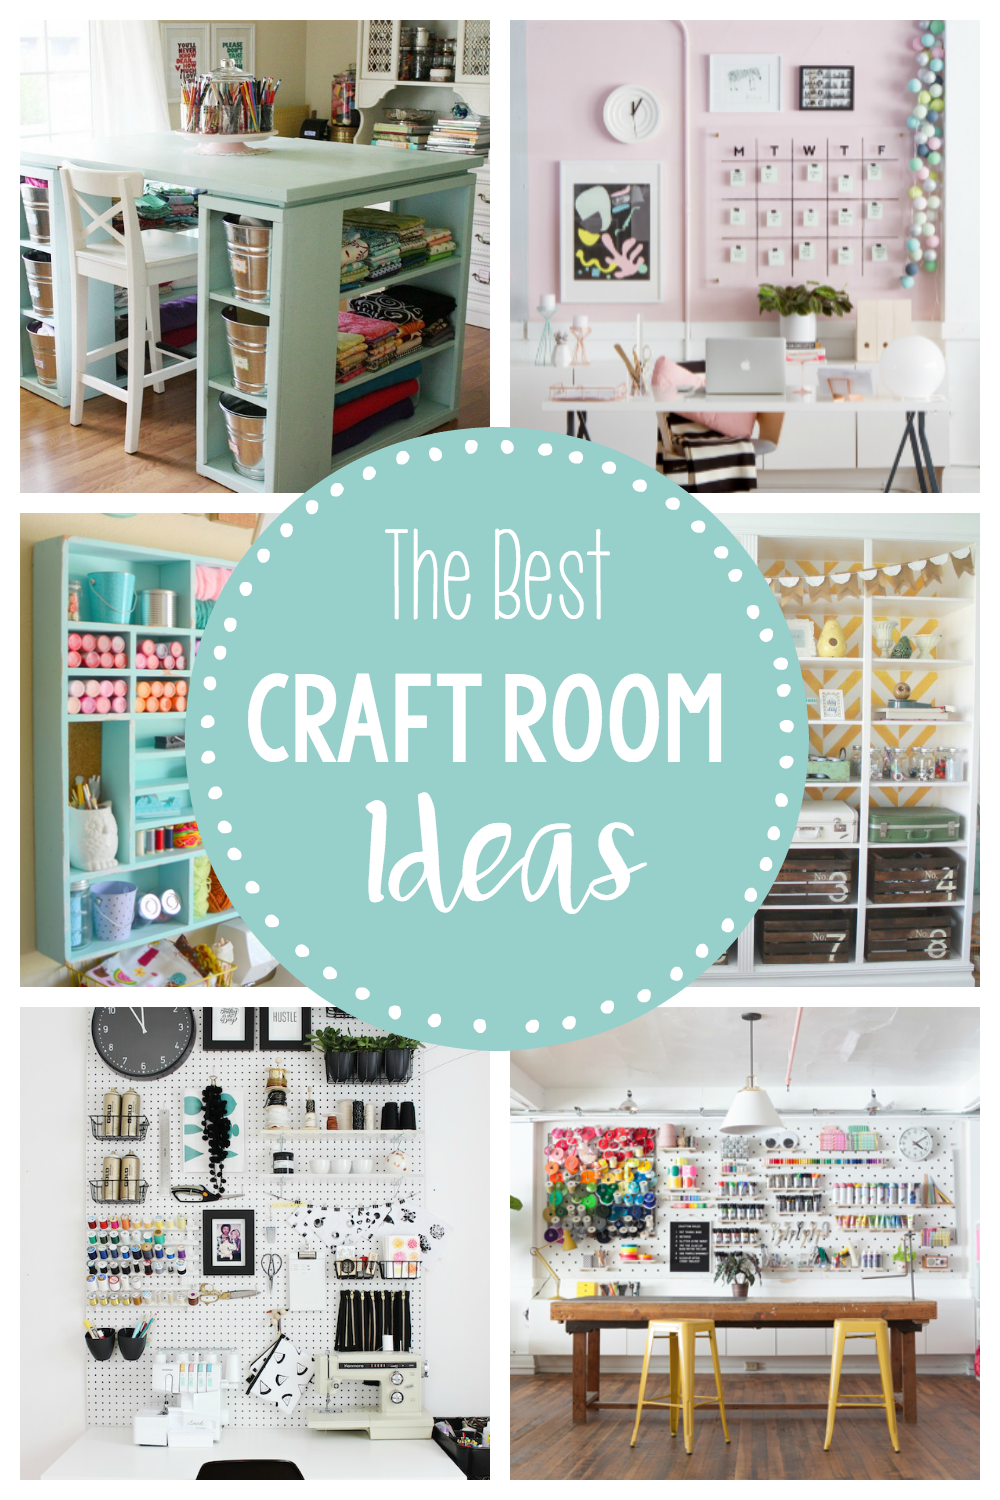 Craft Room Ideas-Check out all of these fun craft room ideas for great inspiration on craft room storage, organization and decorating. #craft #craftroom #craftrooms #deocr #organization #storage